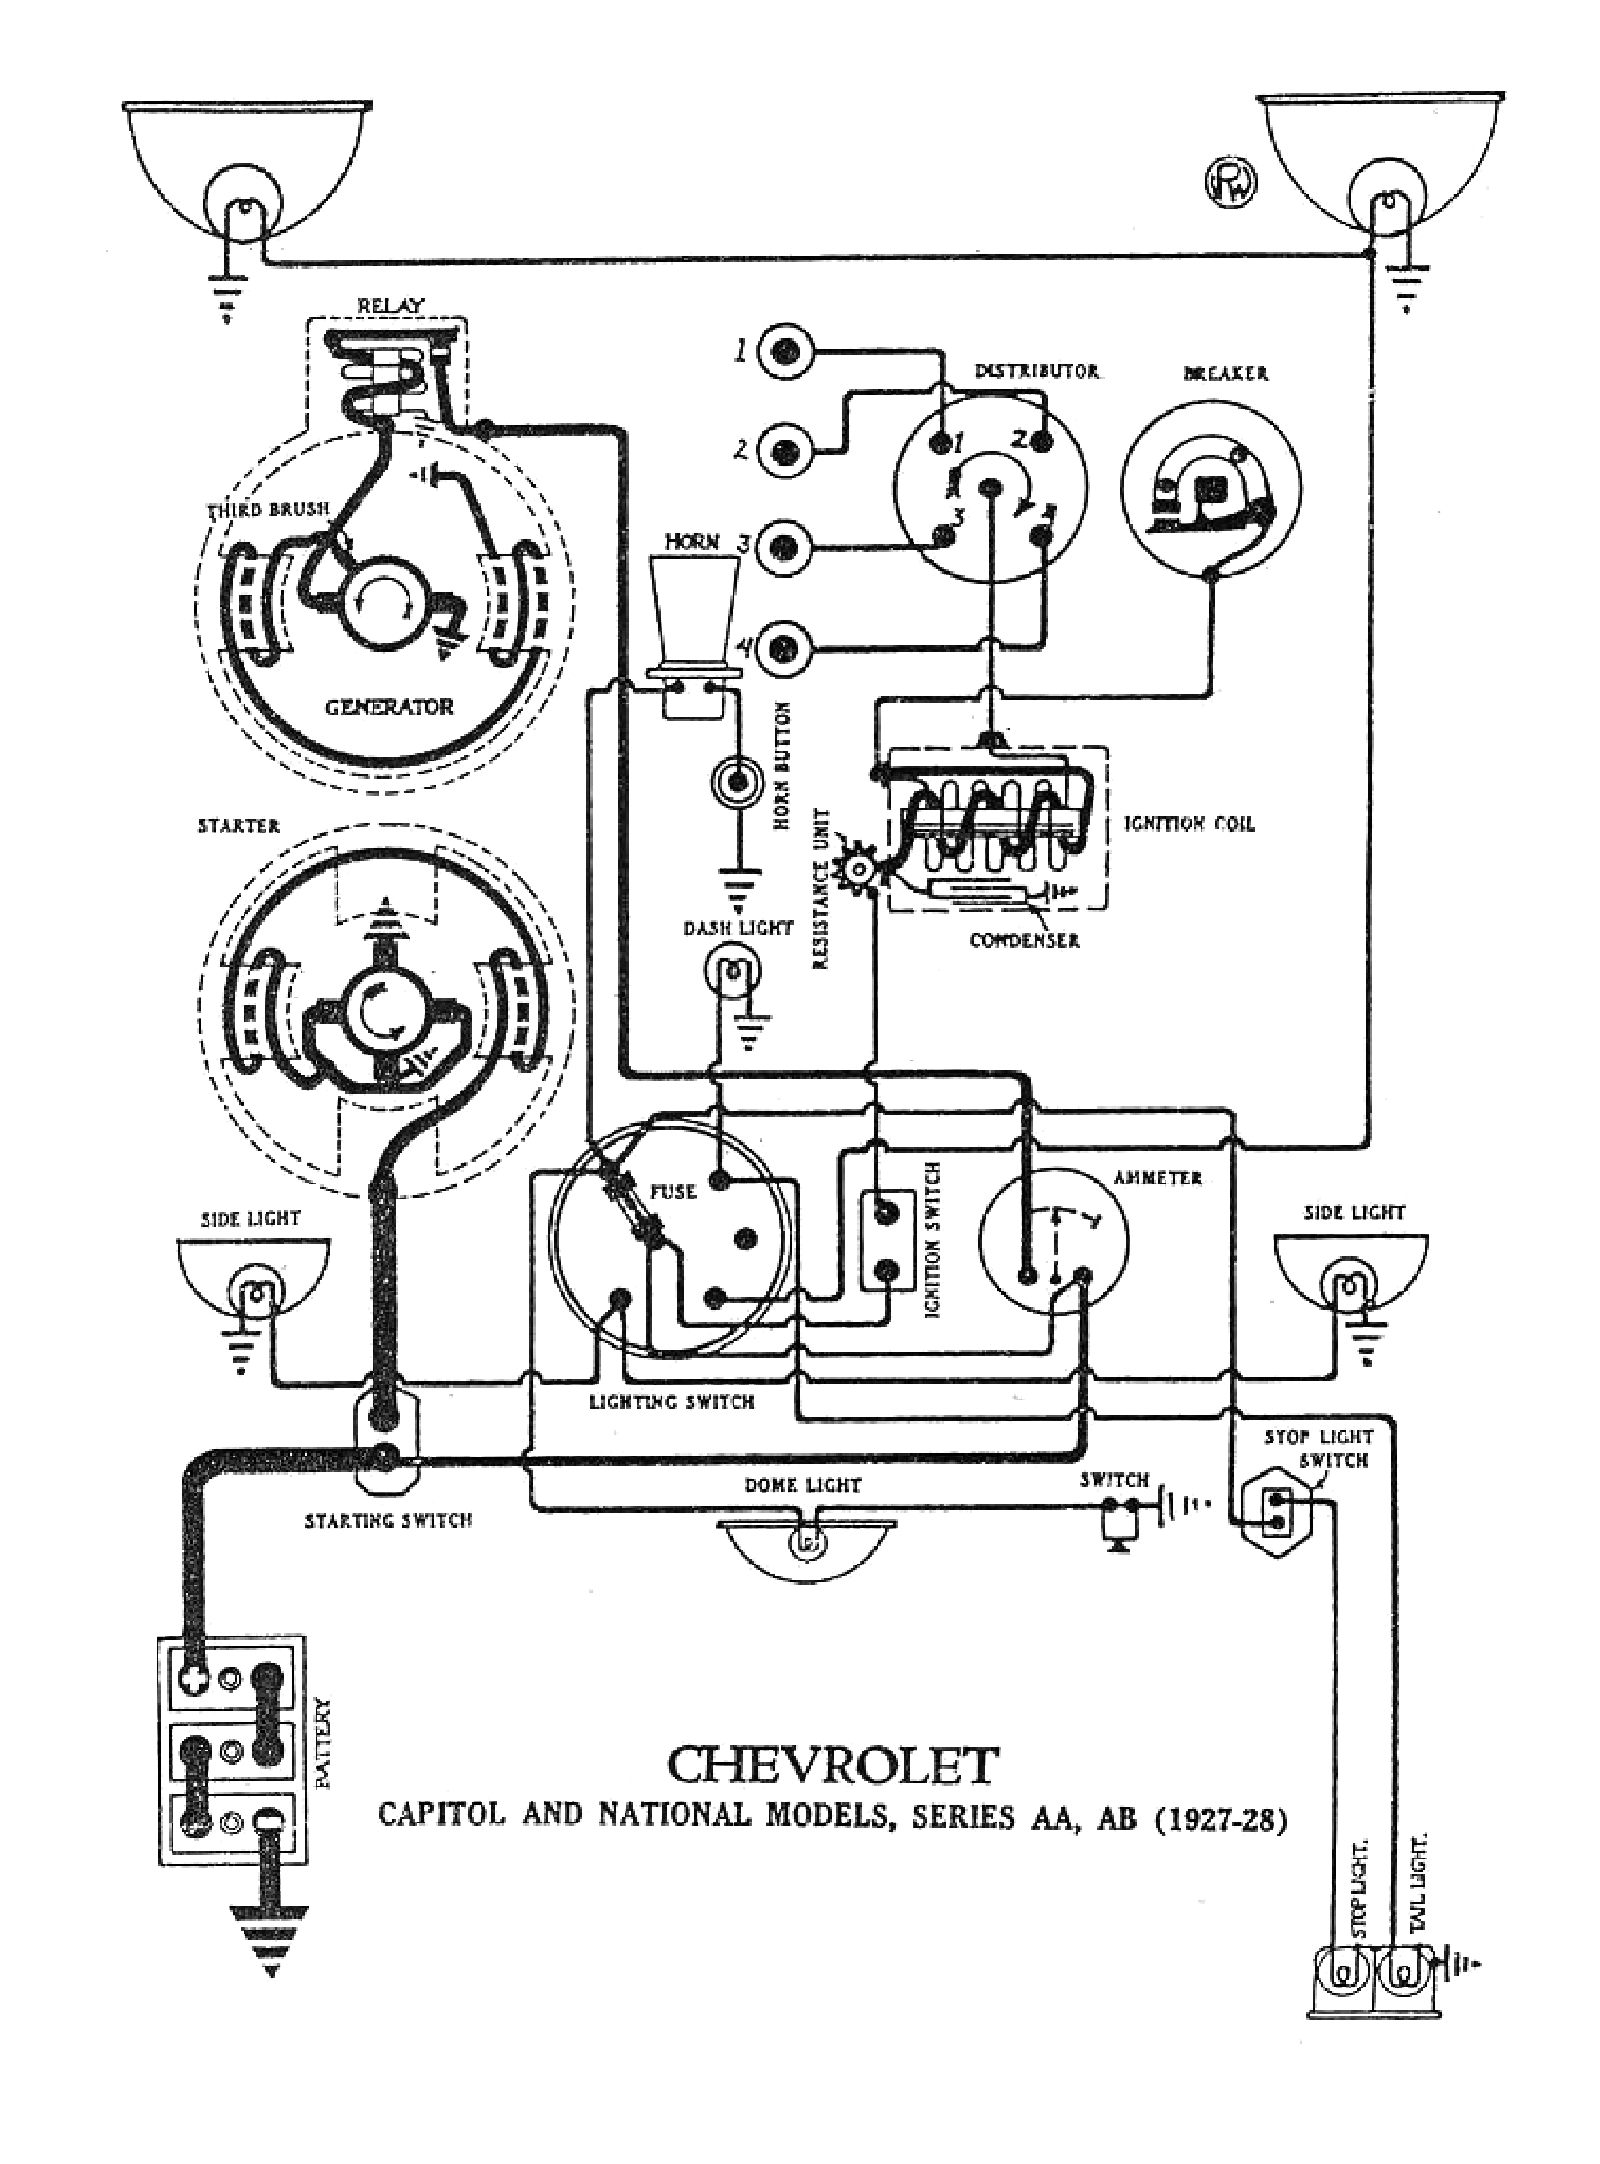 1946 dodge truck wiring diagram  1946  free engine image